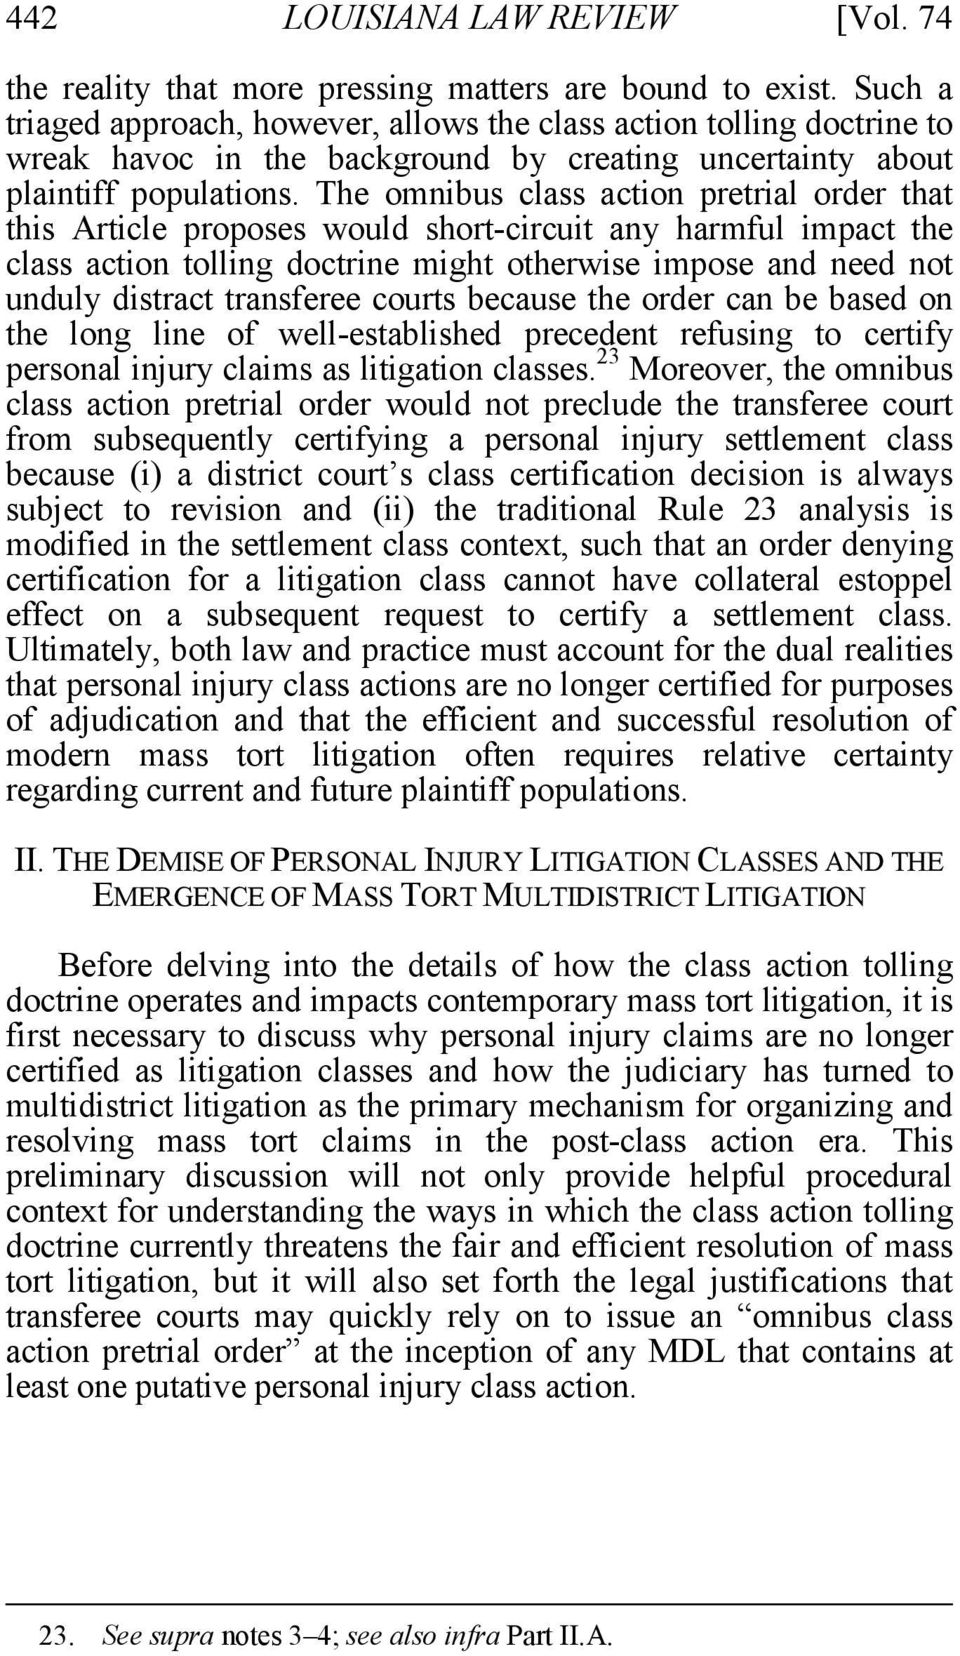 The omnibus class action pretrial order that this Article proposes would short-circuit any harmful impact the class action tolling doctrine might otherwise impose and need not unduly distract